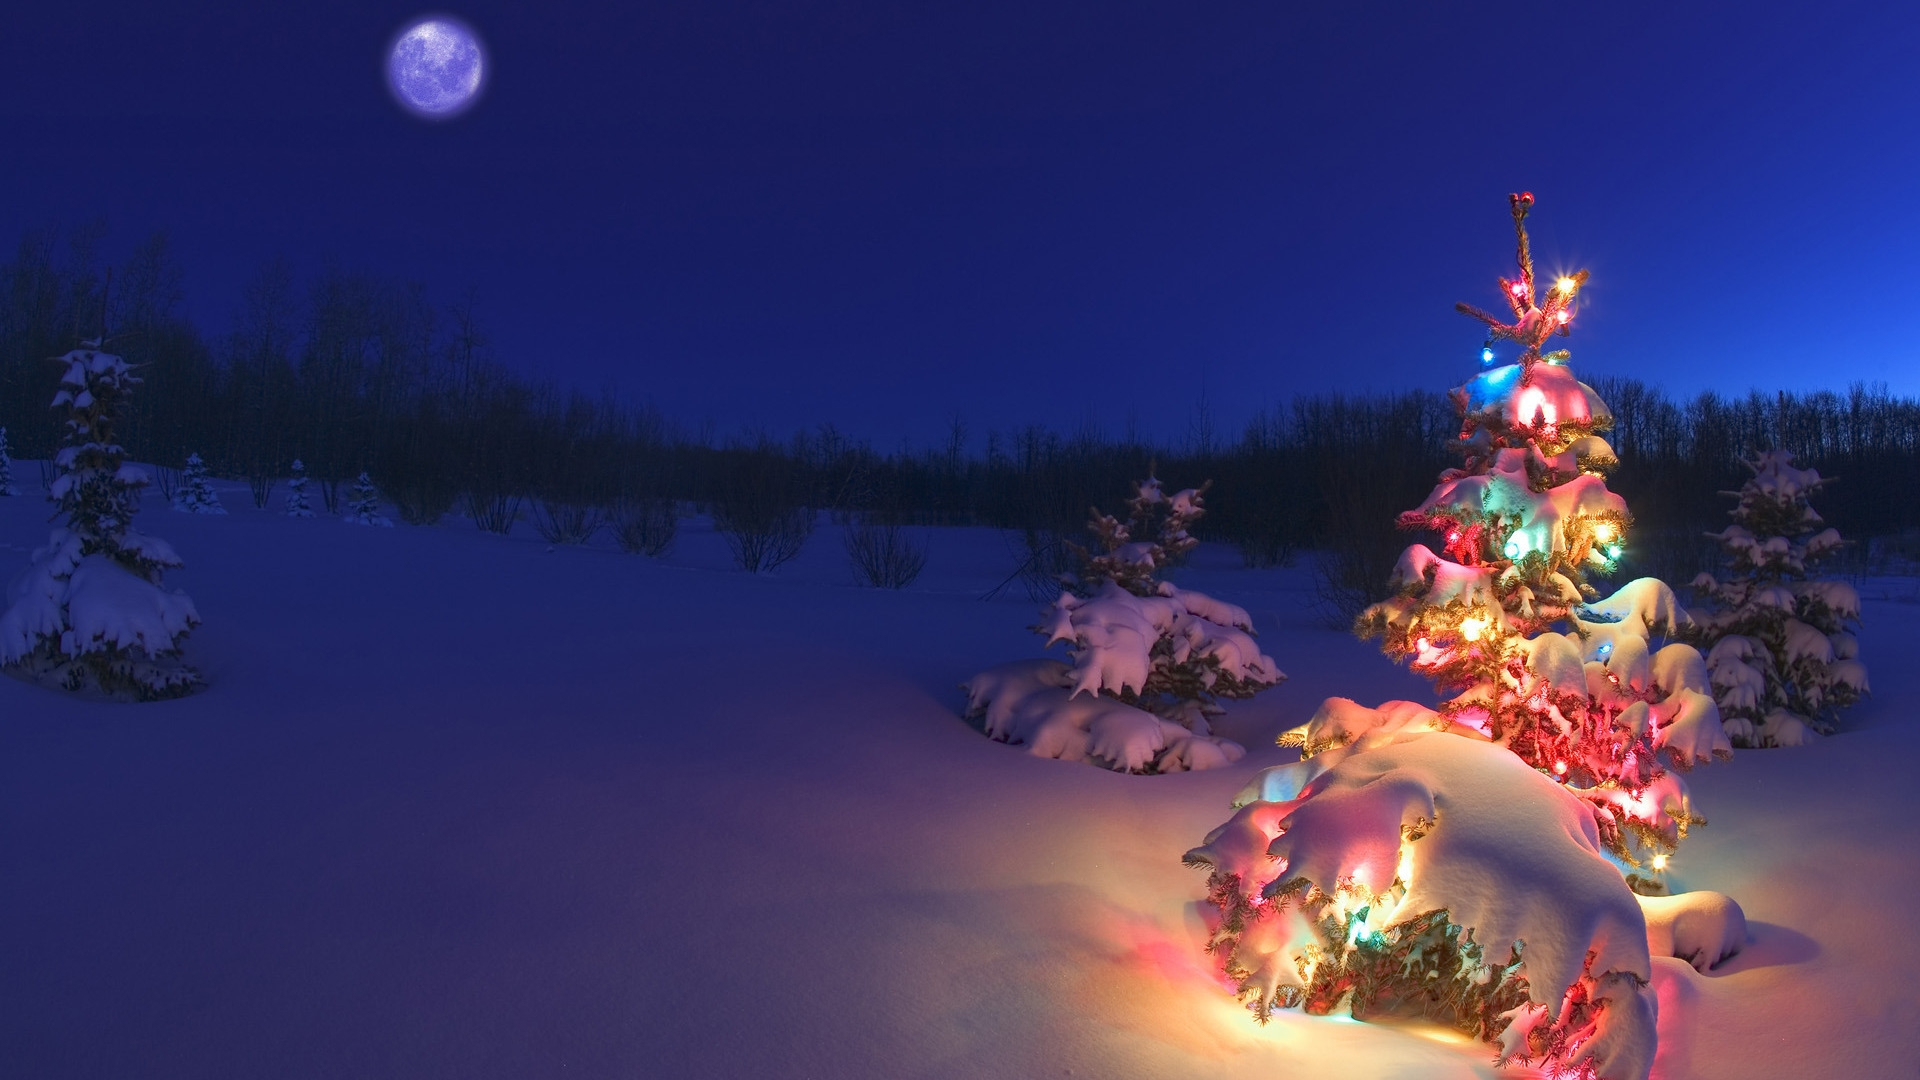 Christmas Tree for 1920 x 1080 HDTV 1080p resolution